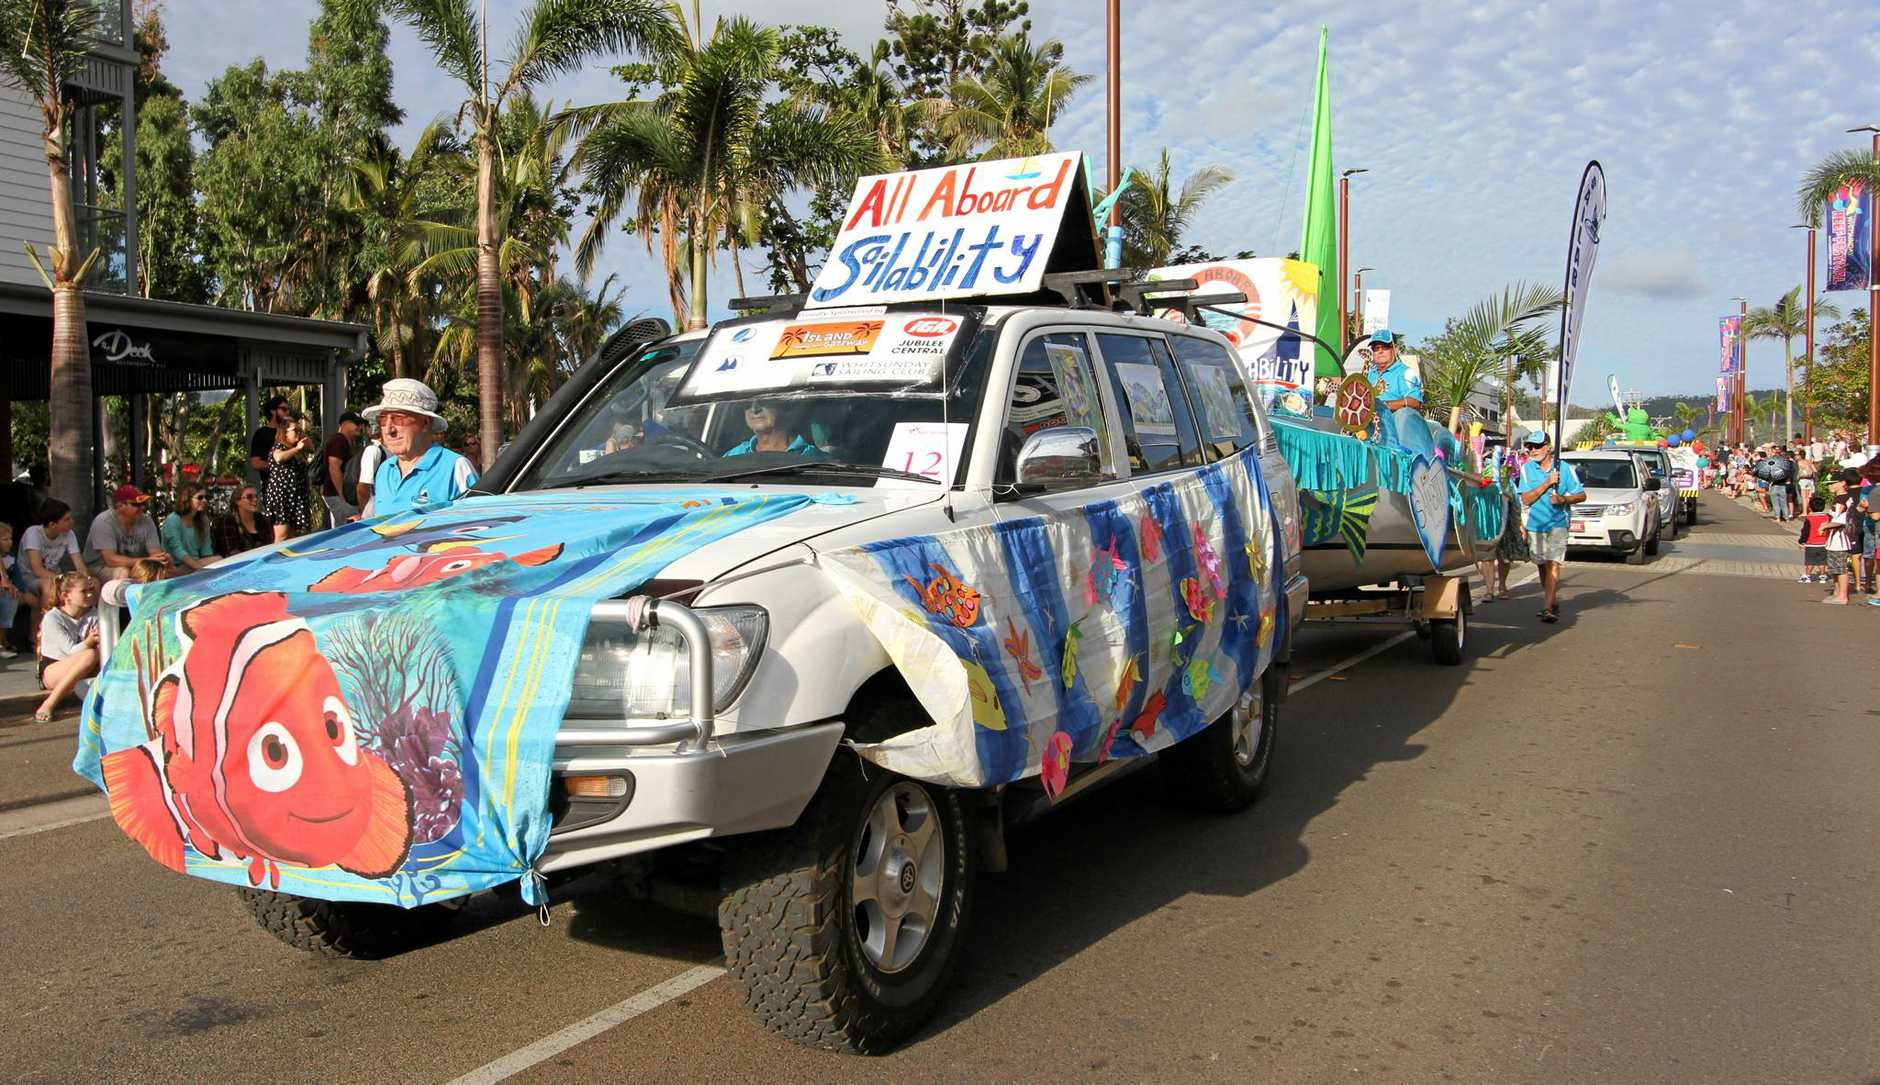 Sailability Whitsunday won the Best Not for Profit category at the 2017 Rotary Street Parade.